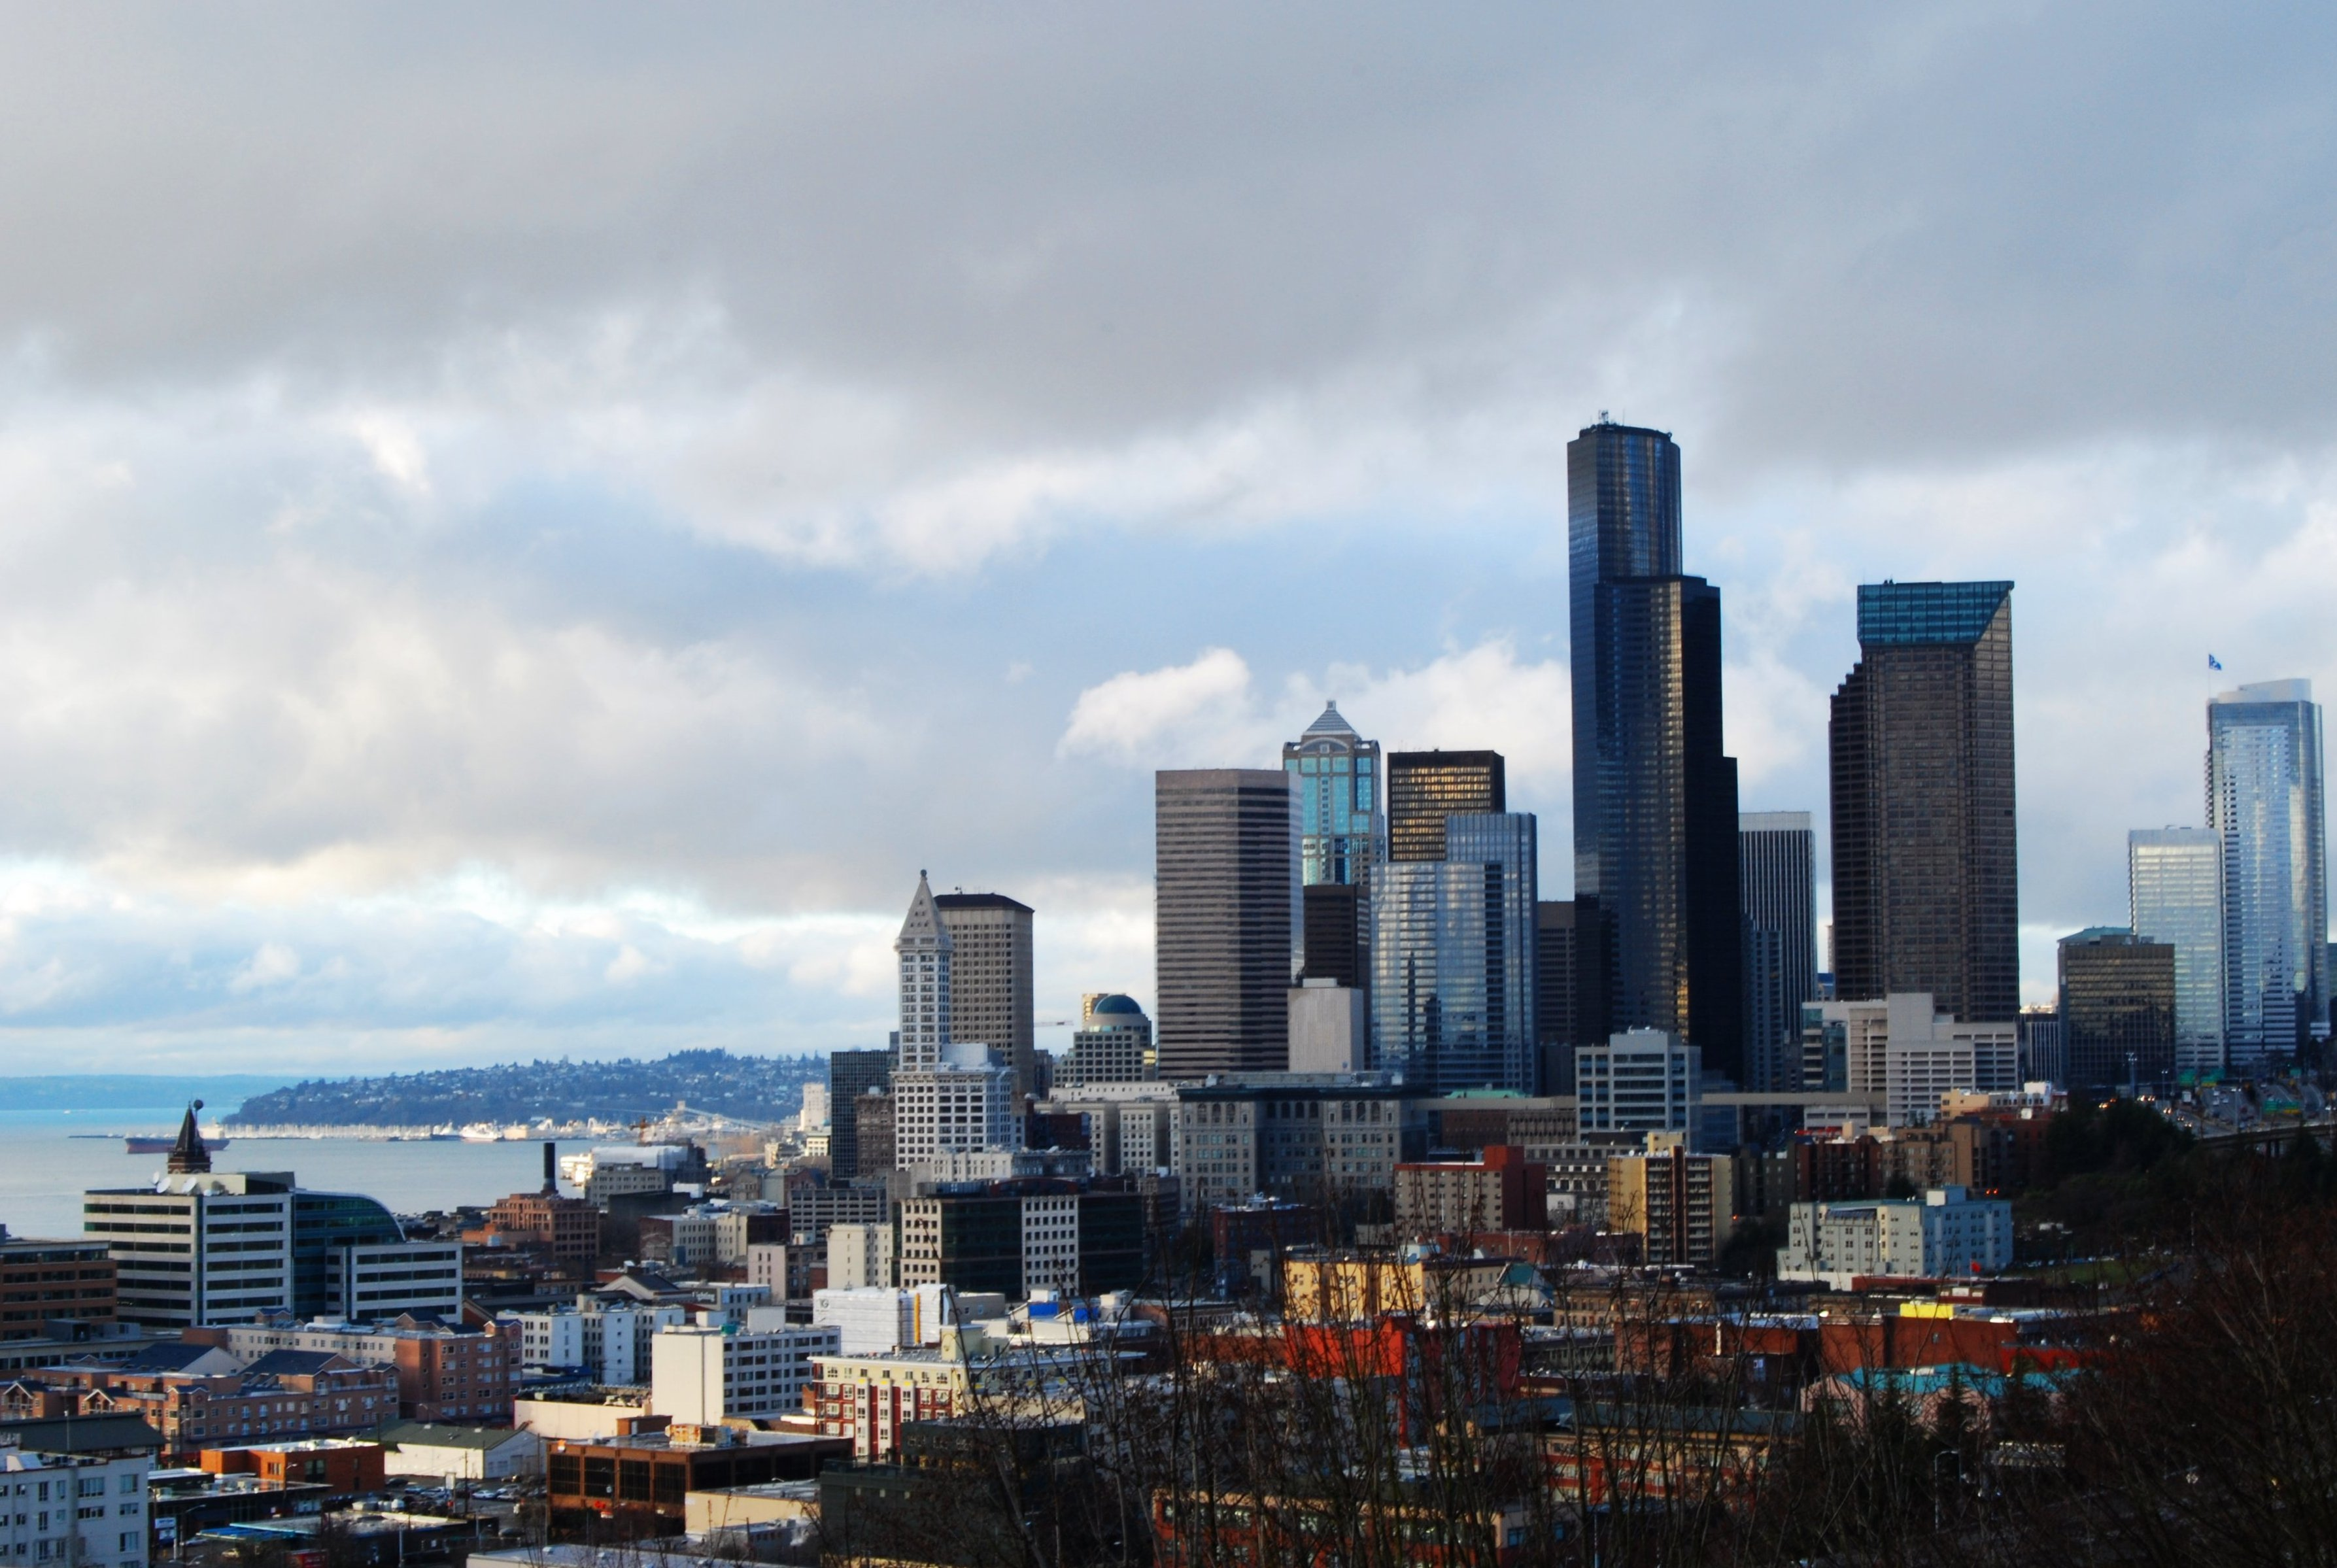 Seattle skyline from rizal HD Wallpaper